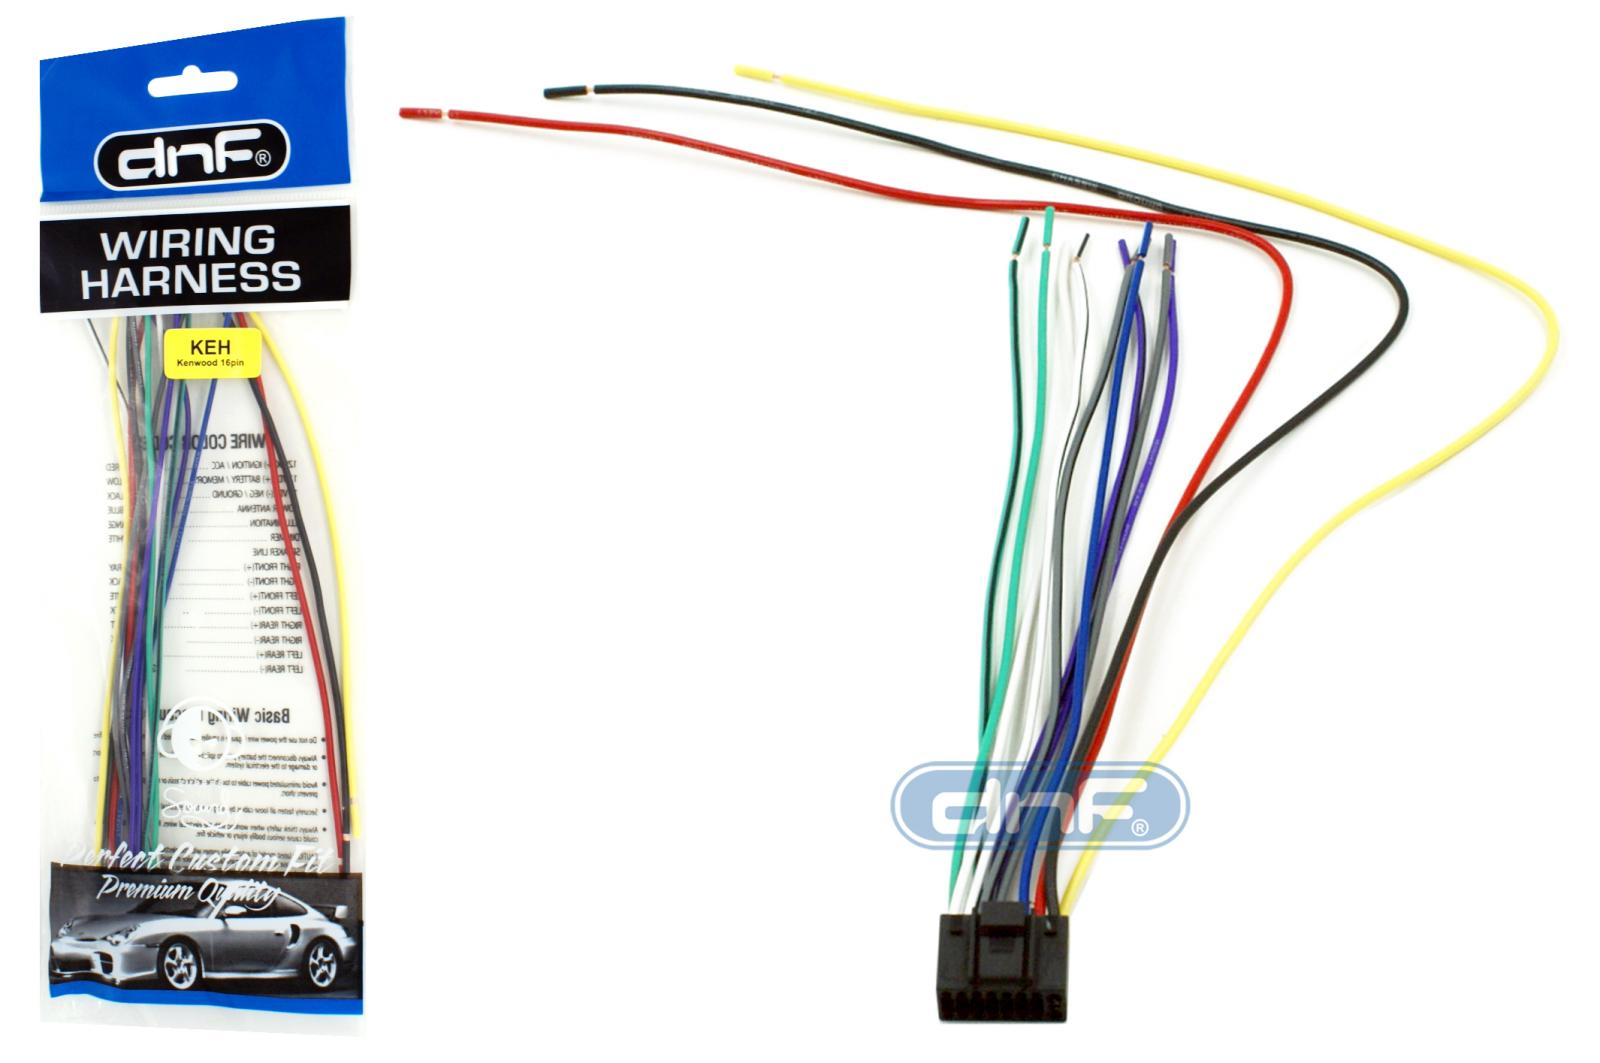 medium resolution of wire harness further kenwood kdc mp332 wiring diagram besides rh 5 17 54 aspire atlantis de kenwood wiring diagram colors kenwood wiring diagram colors